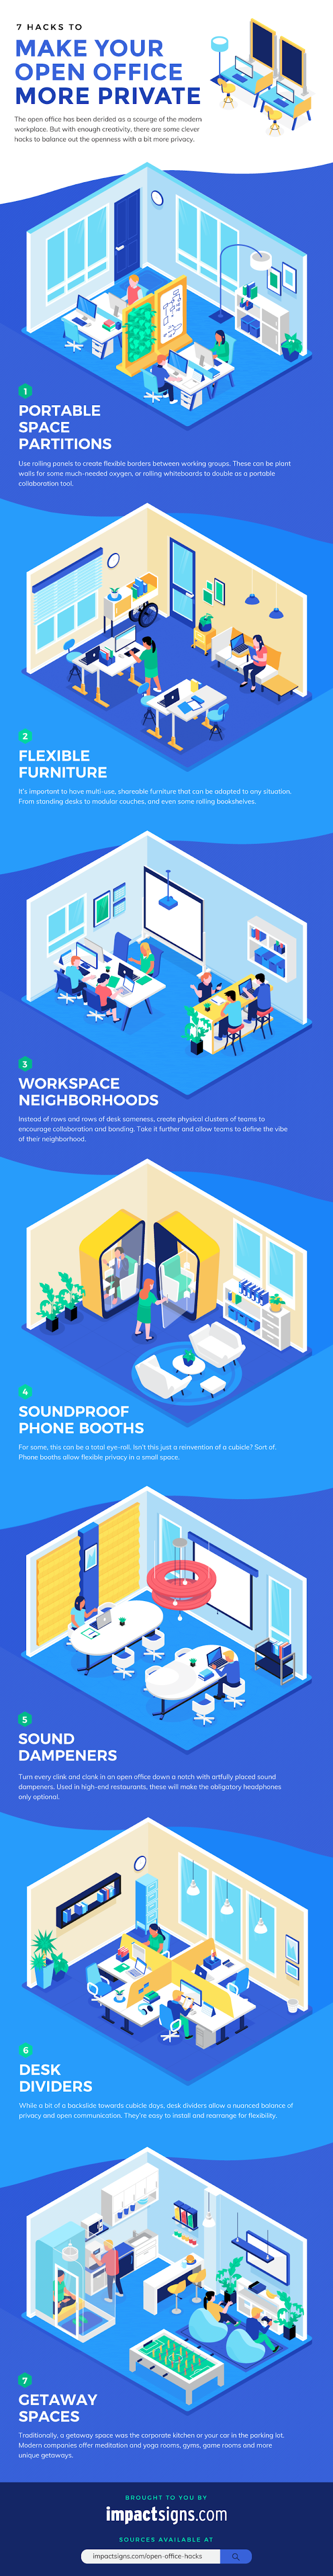 7 Hacks to Make Your Open Office More Private #infographic #Office #Office Hacks #infographics